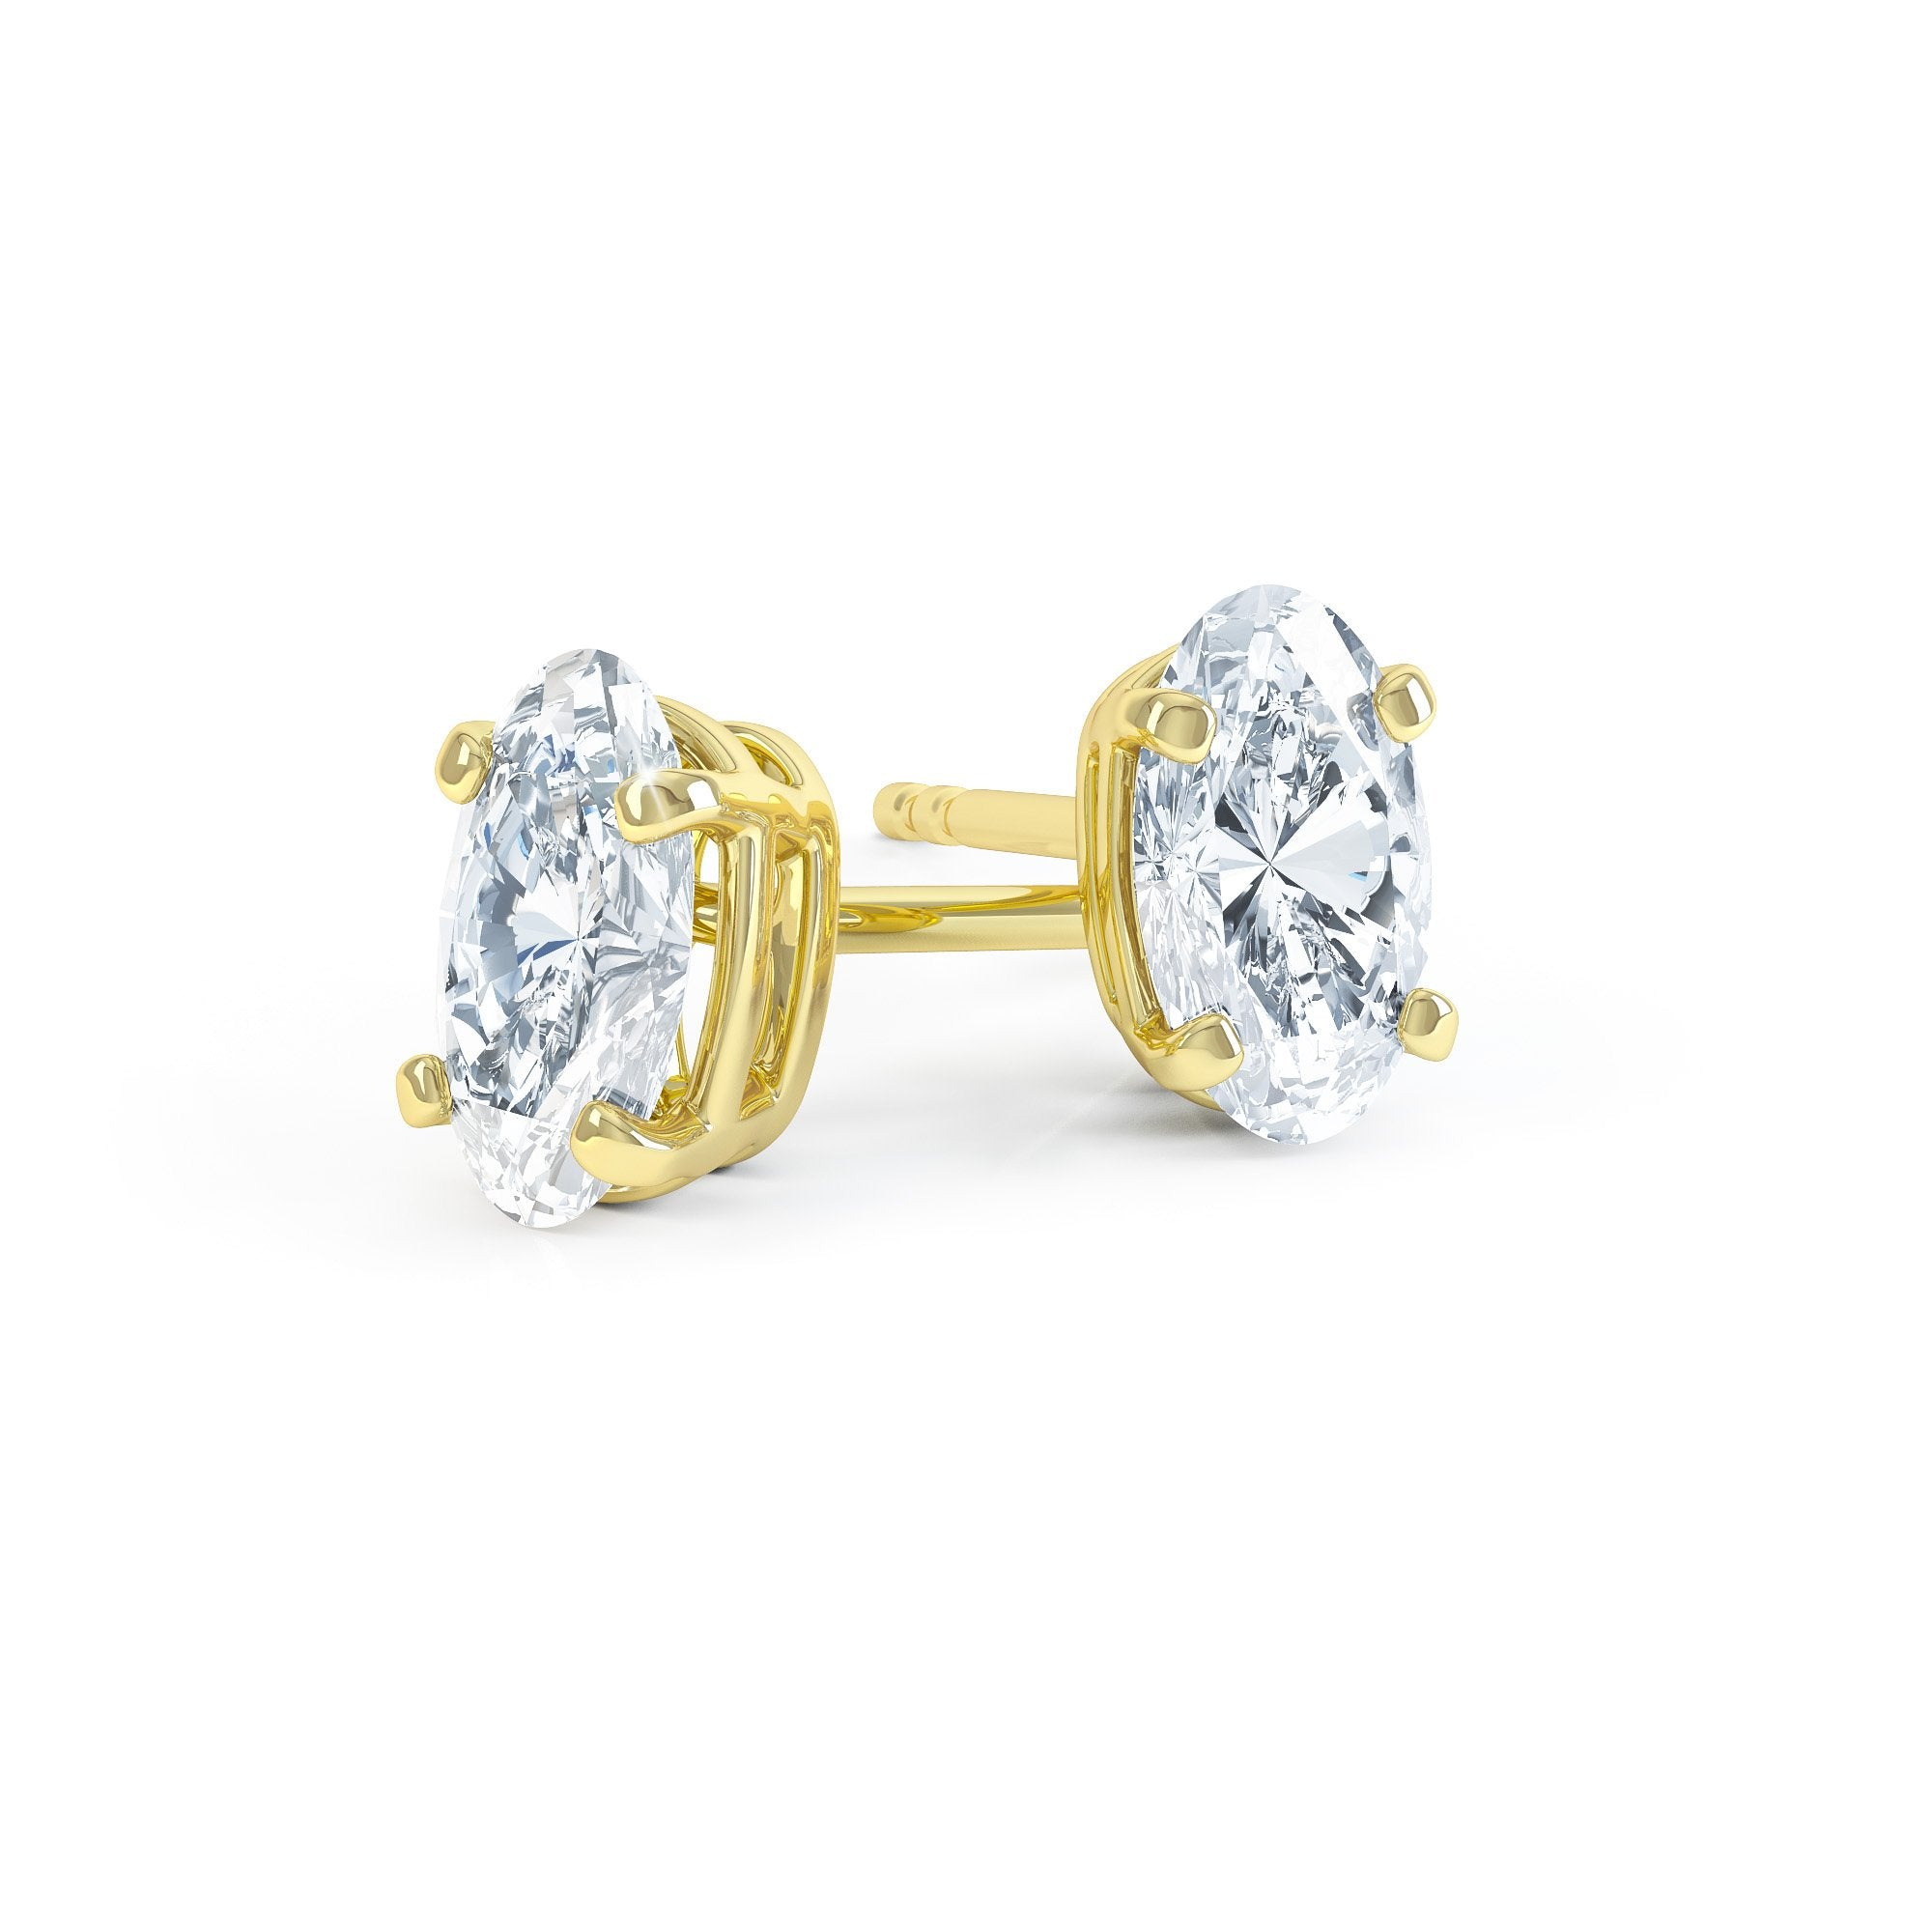 SAVANNAH - Oval Moissanite 18k Yellow Gold Stud Earrings Earrings Lily Arkwright